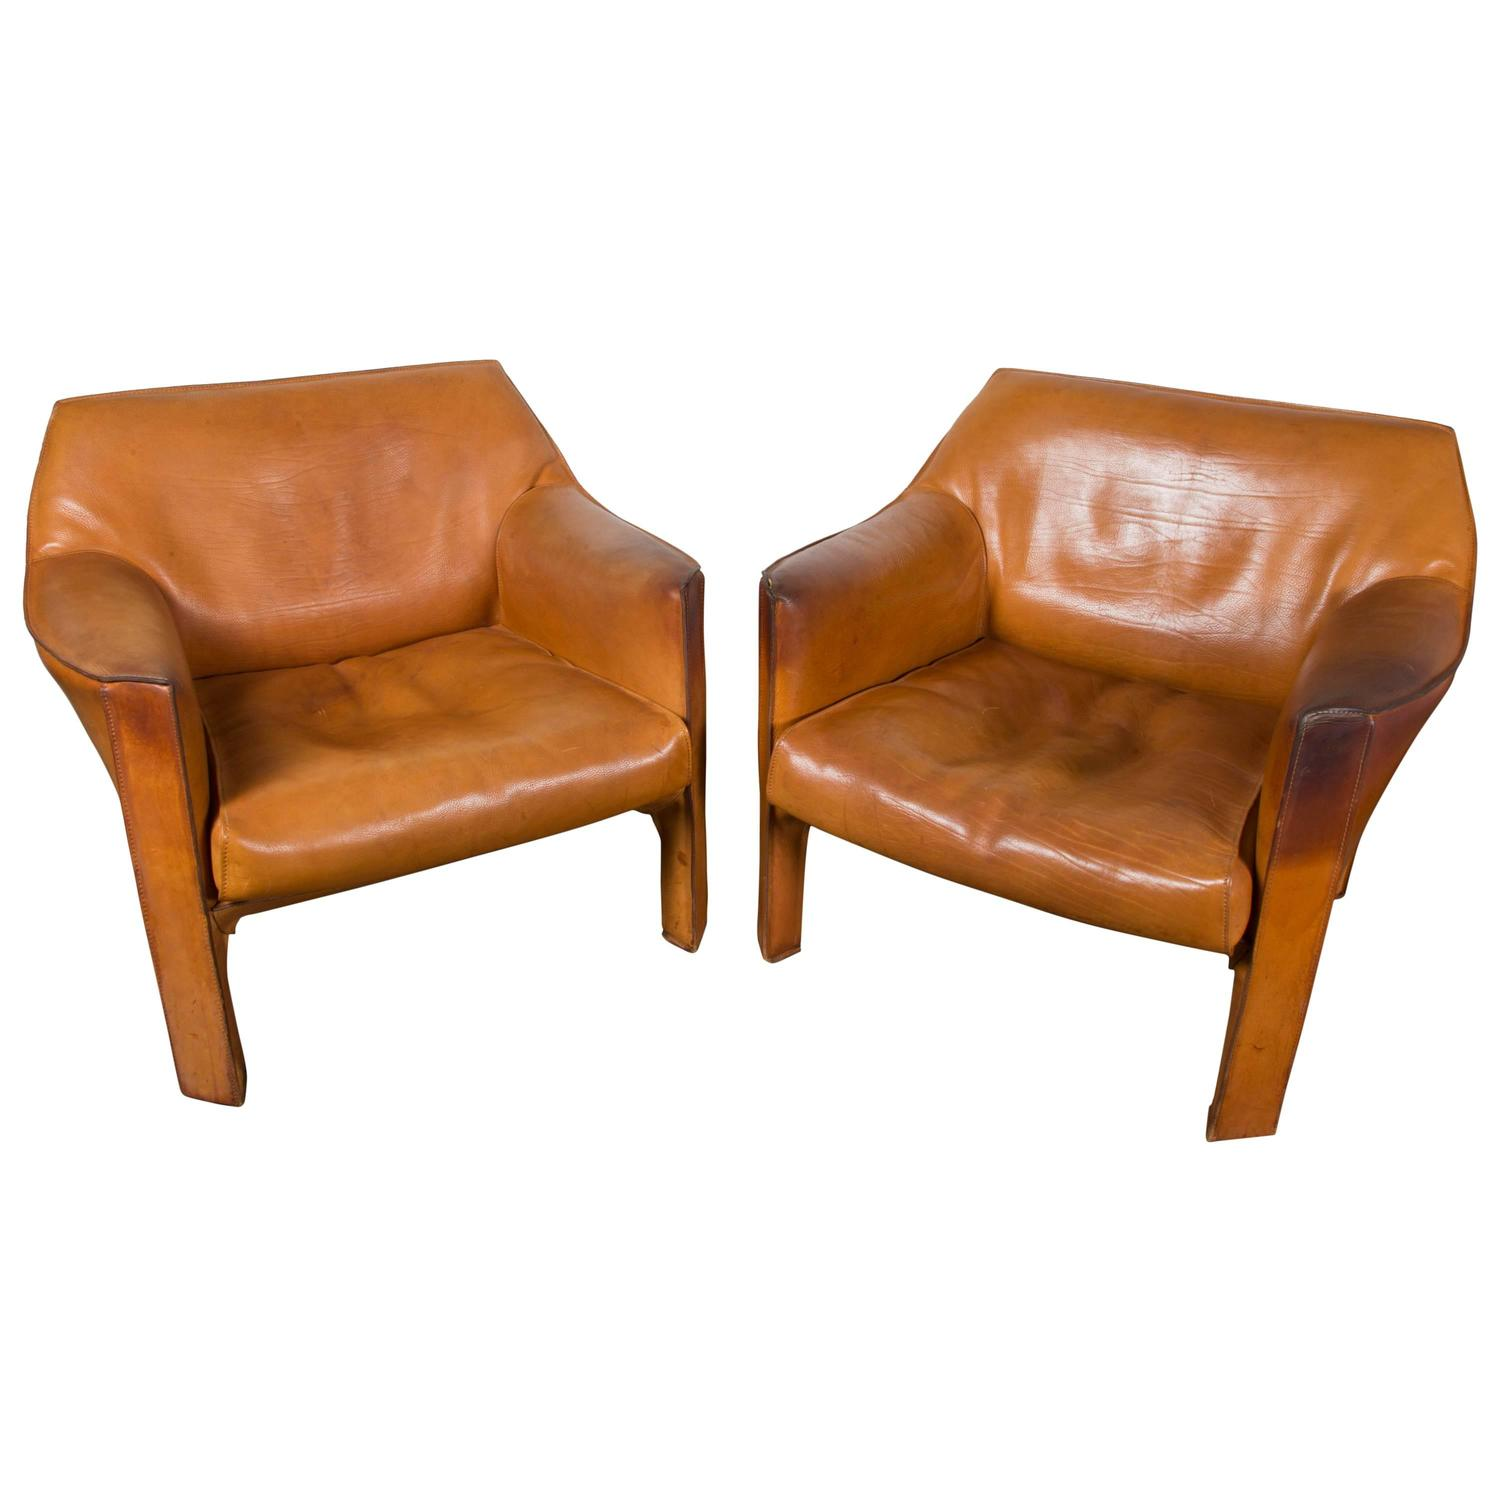 Pair of CAB Lounge Chairs by Mario Bellini for